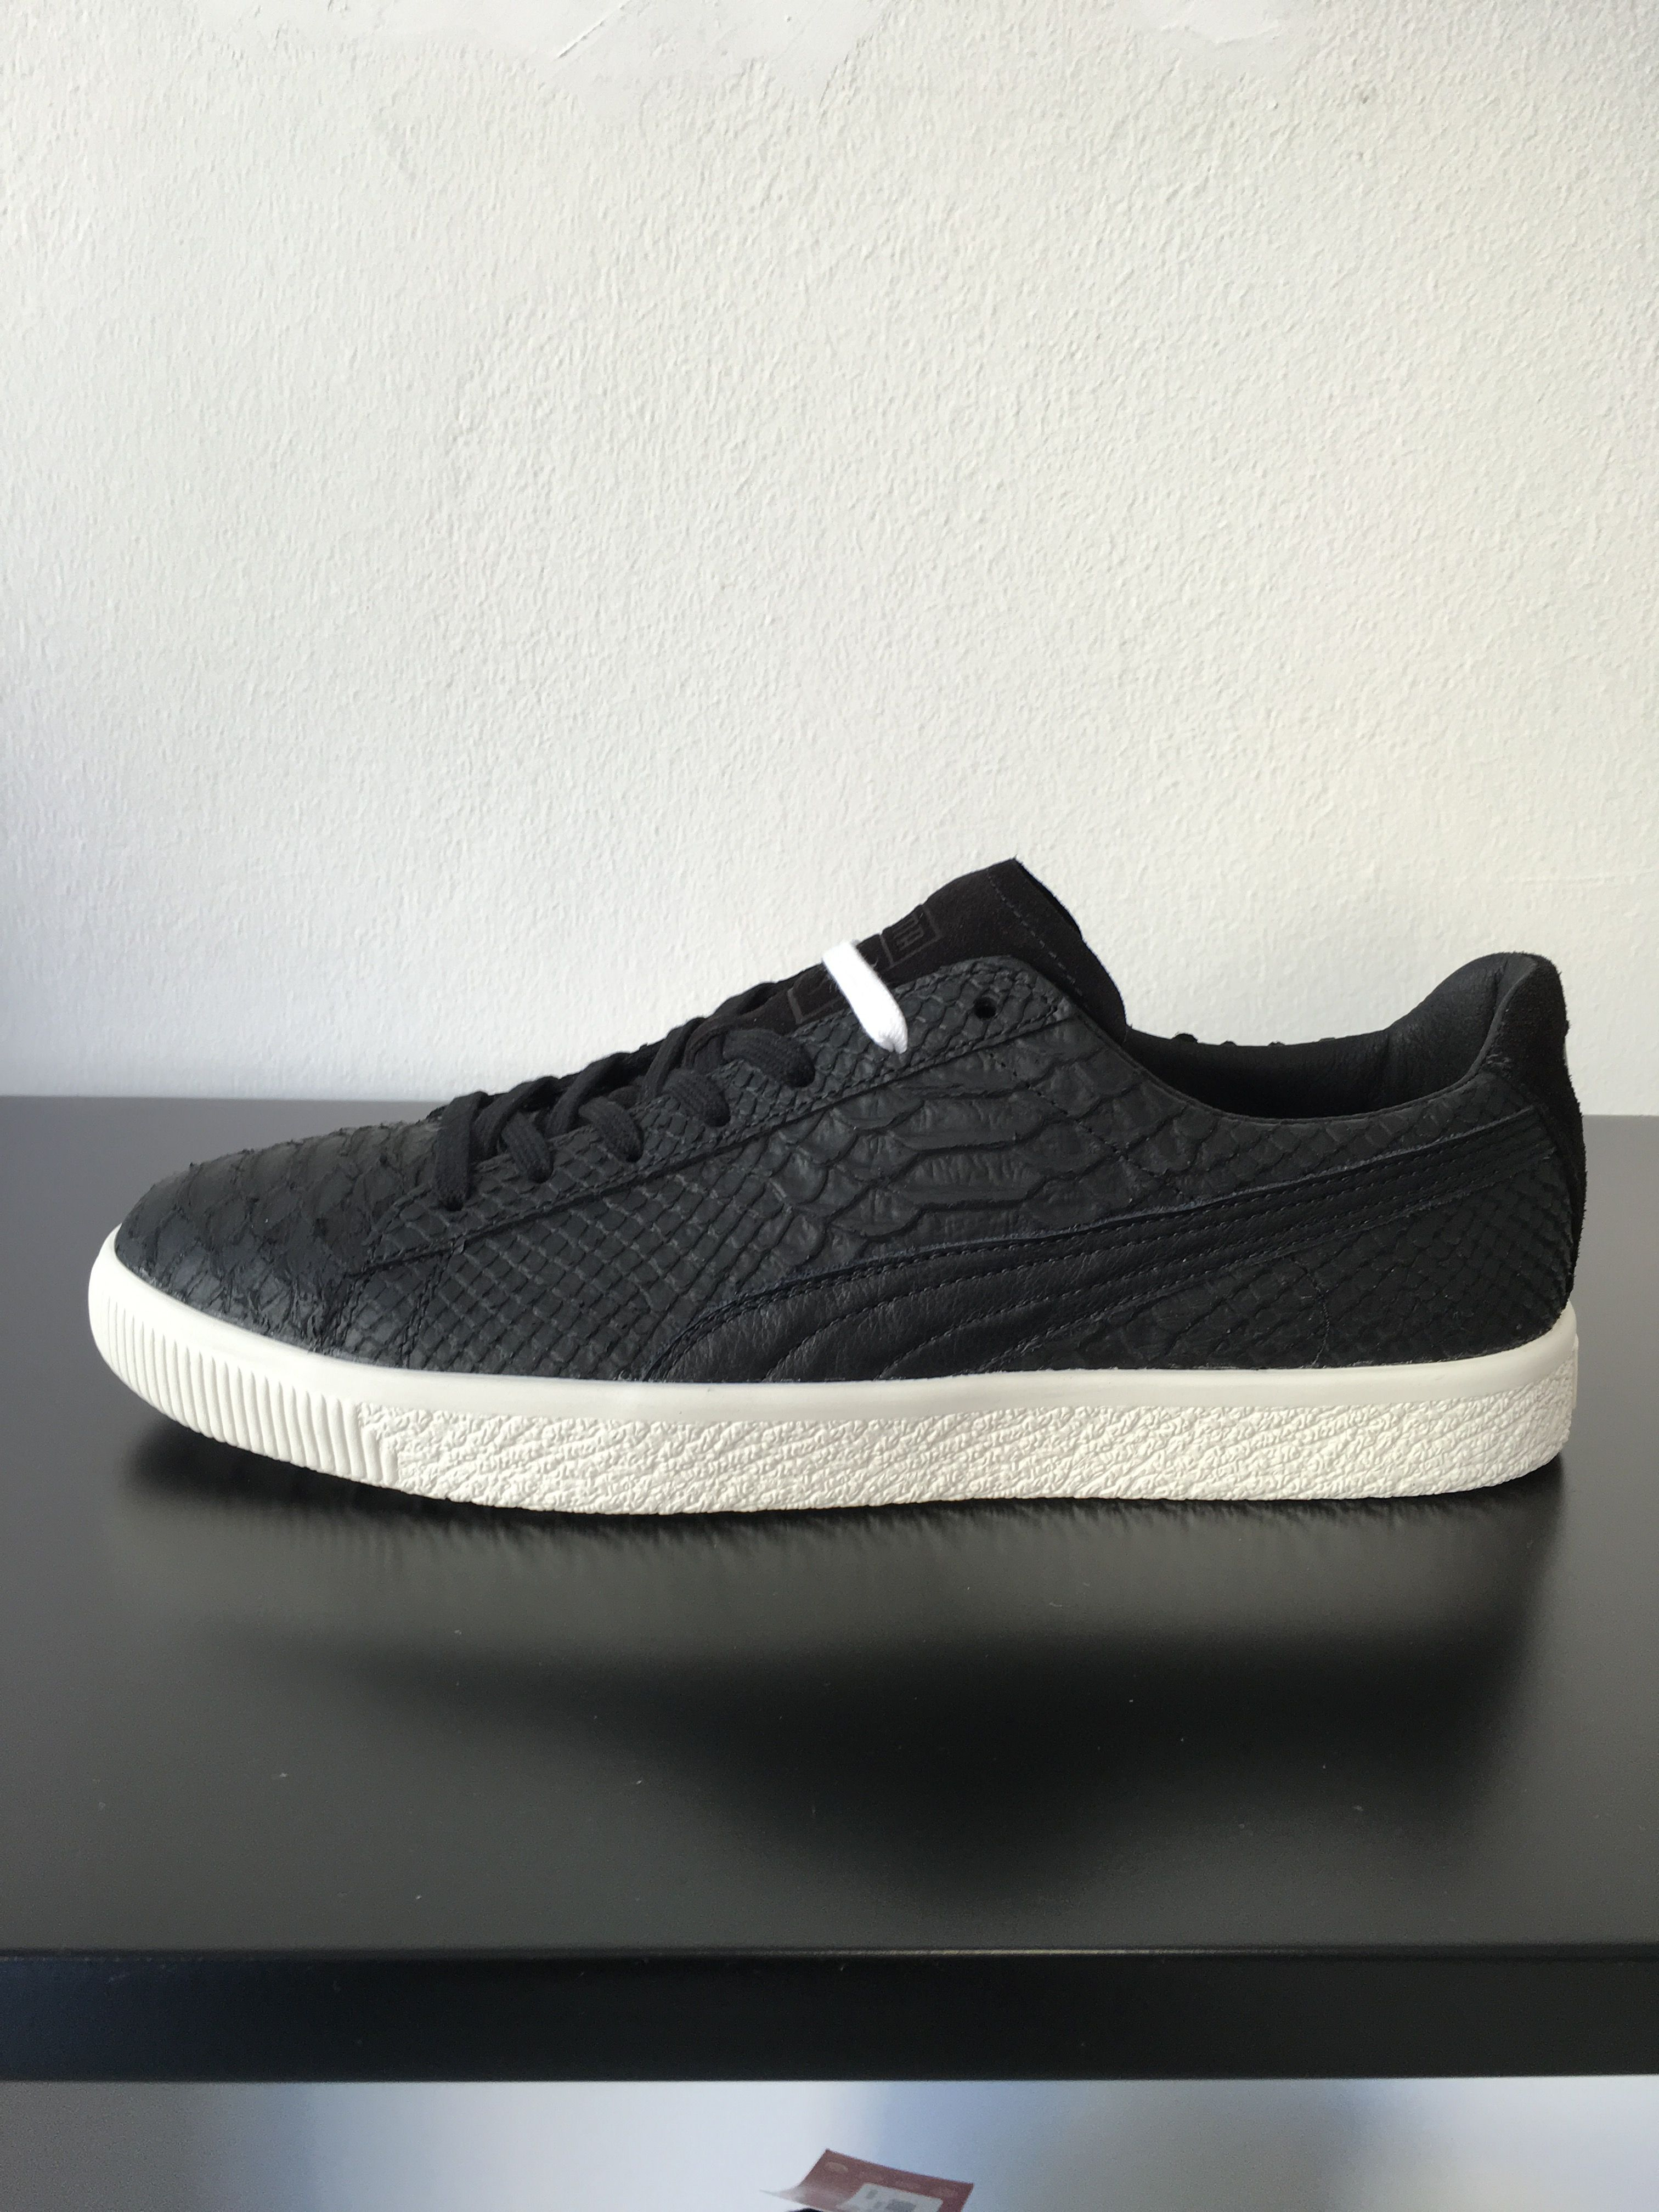 acheter pas cher db448 95c2b Puma clyde mii leather black | want list | Puma suede ...